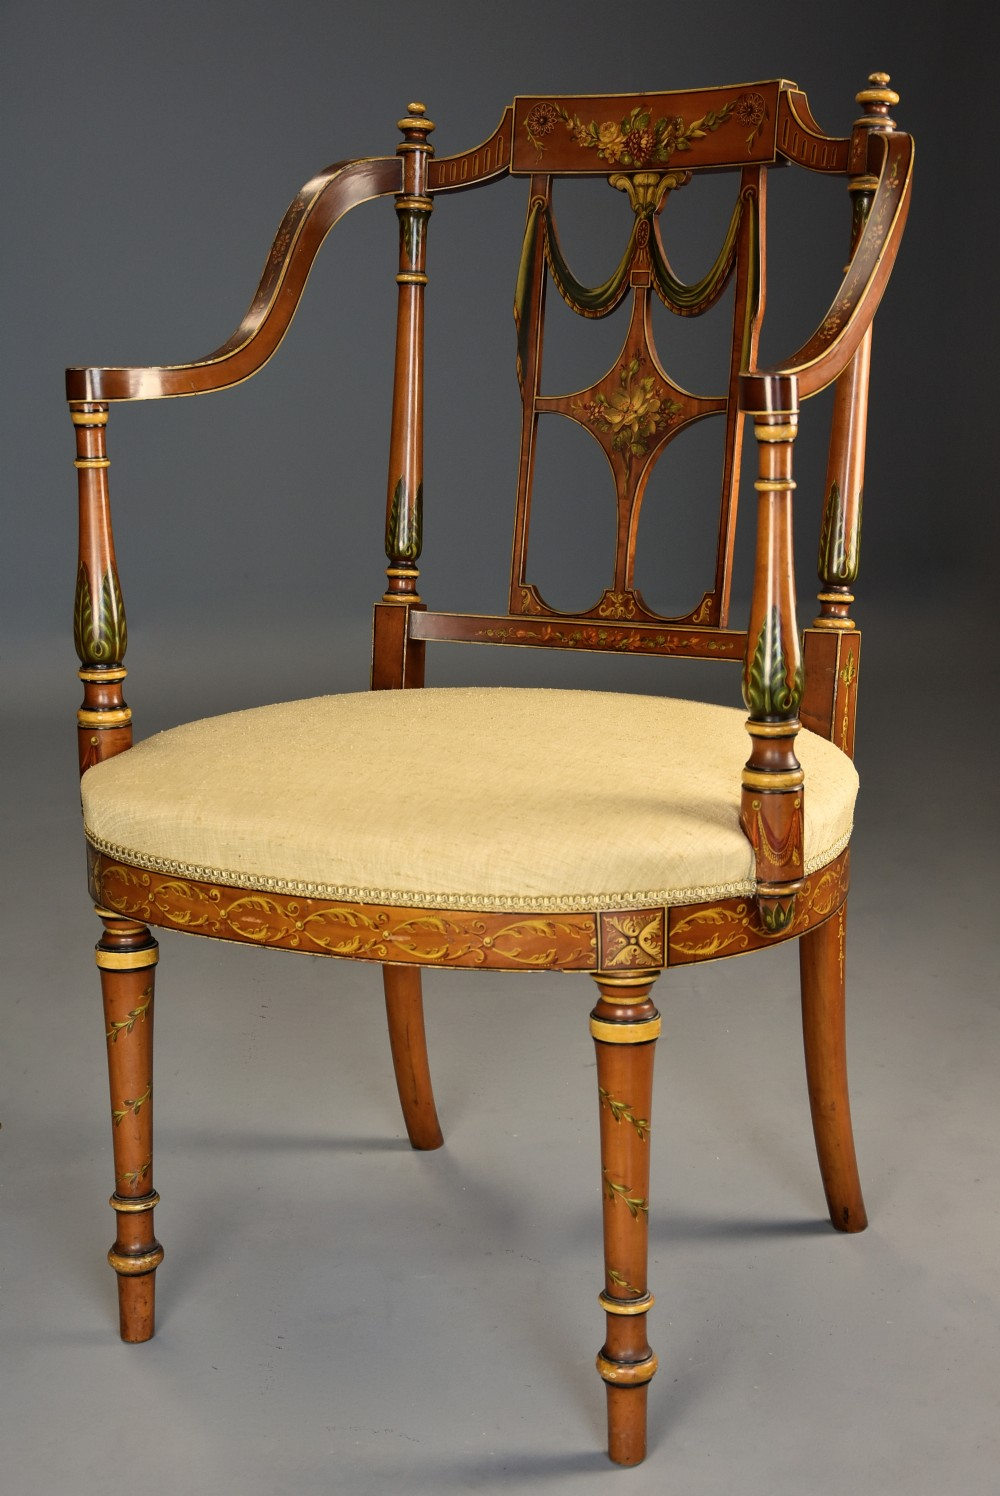 fine quality early 20th century sheraton revival satinwood painted open armchair